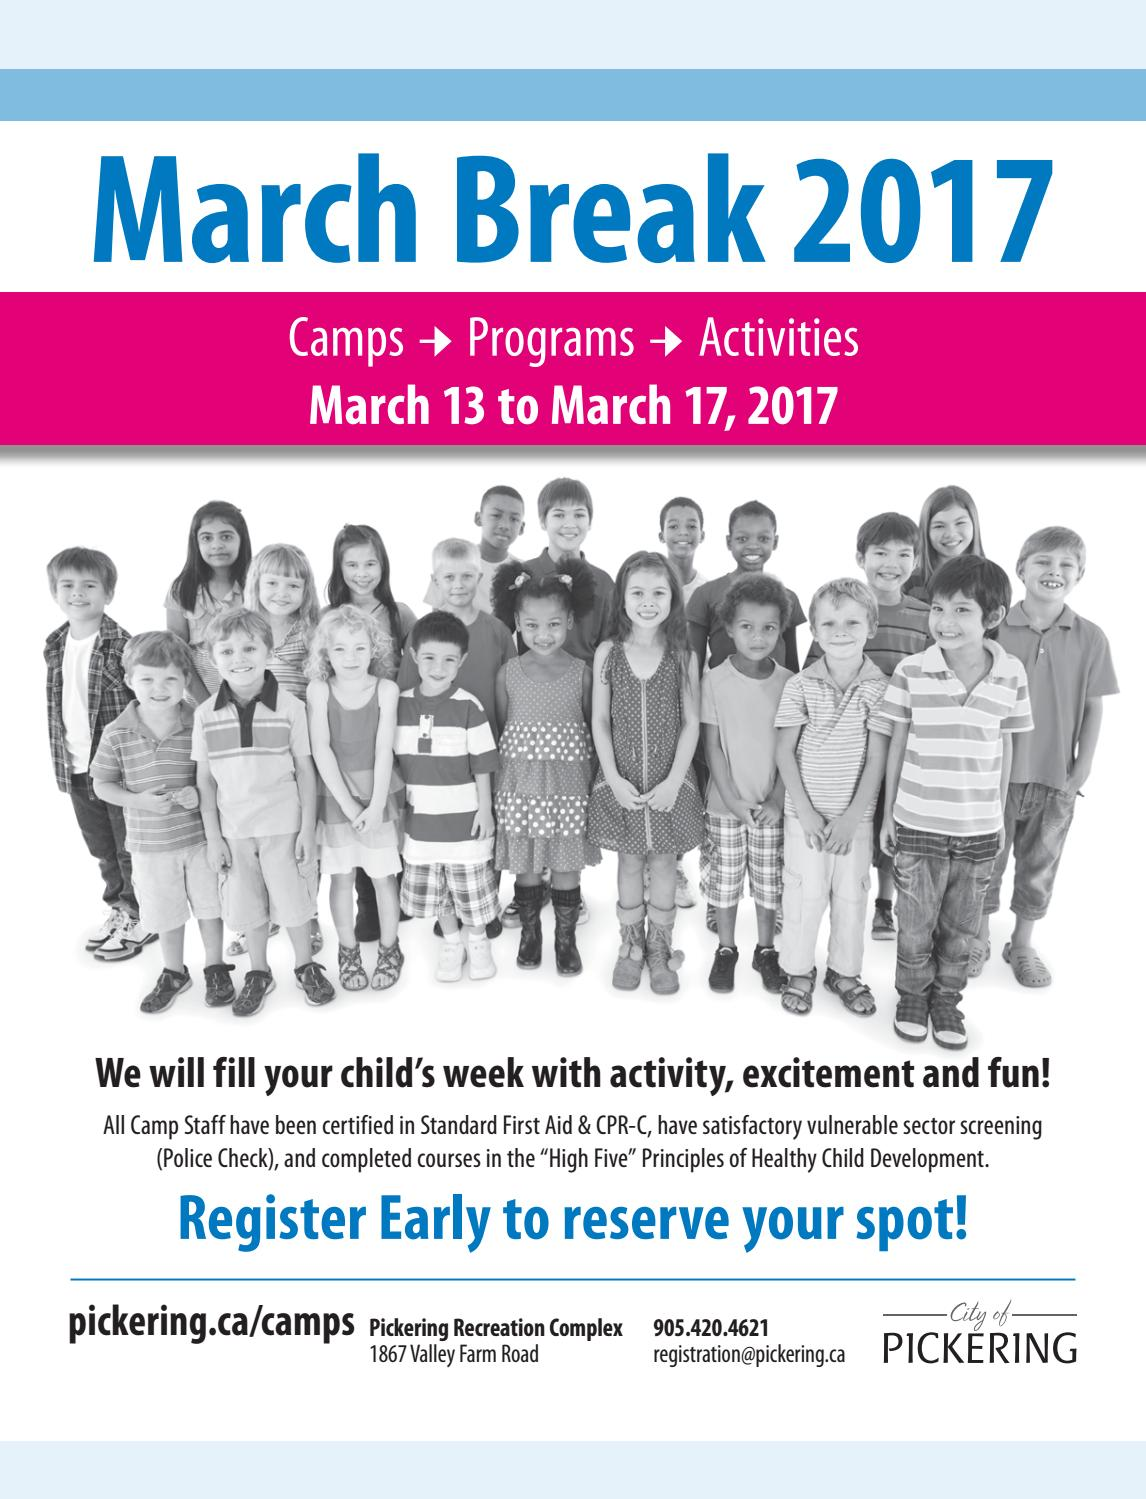 marchbreakcamps2017 by eSolutionsGroup Ltd - issuu